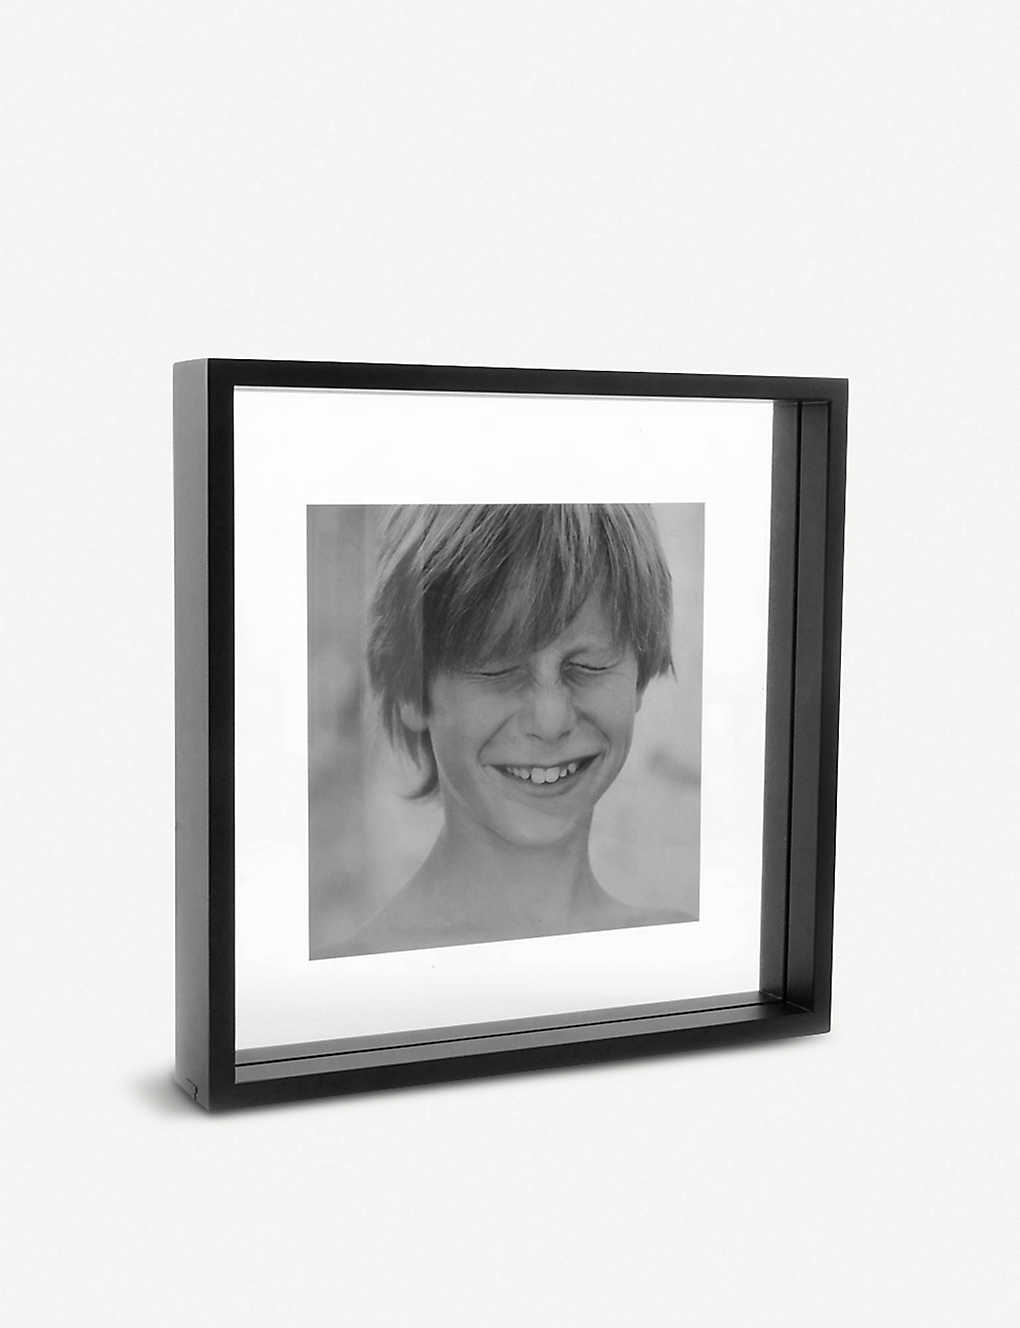 Square Floating Box wooden photo frame 32x32cm